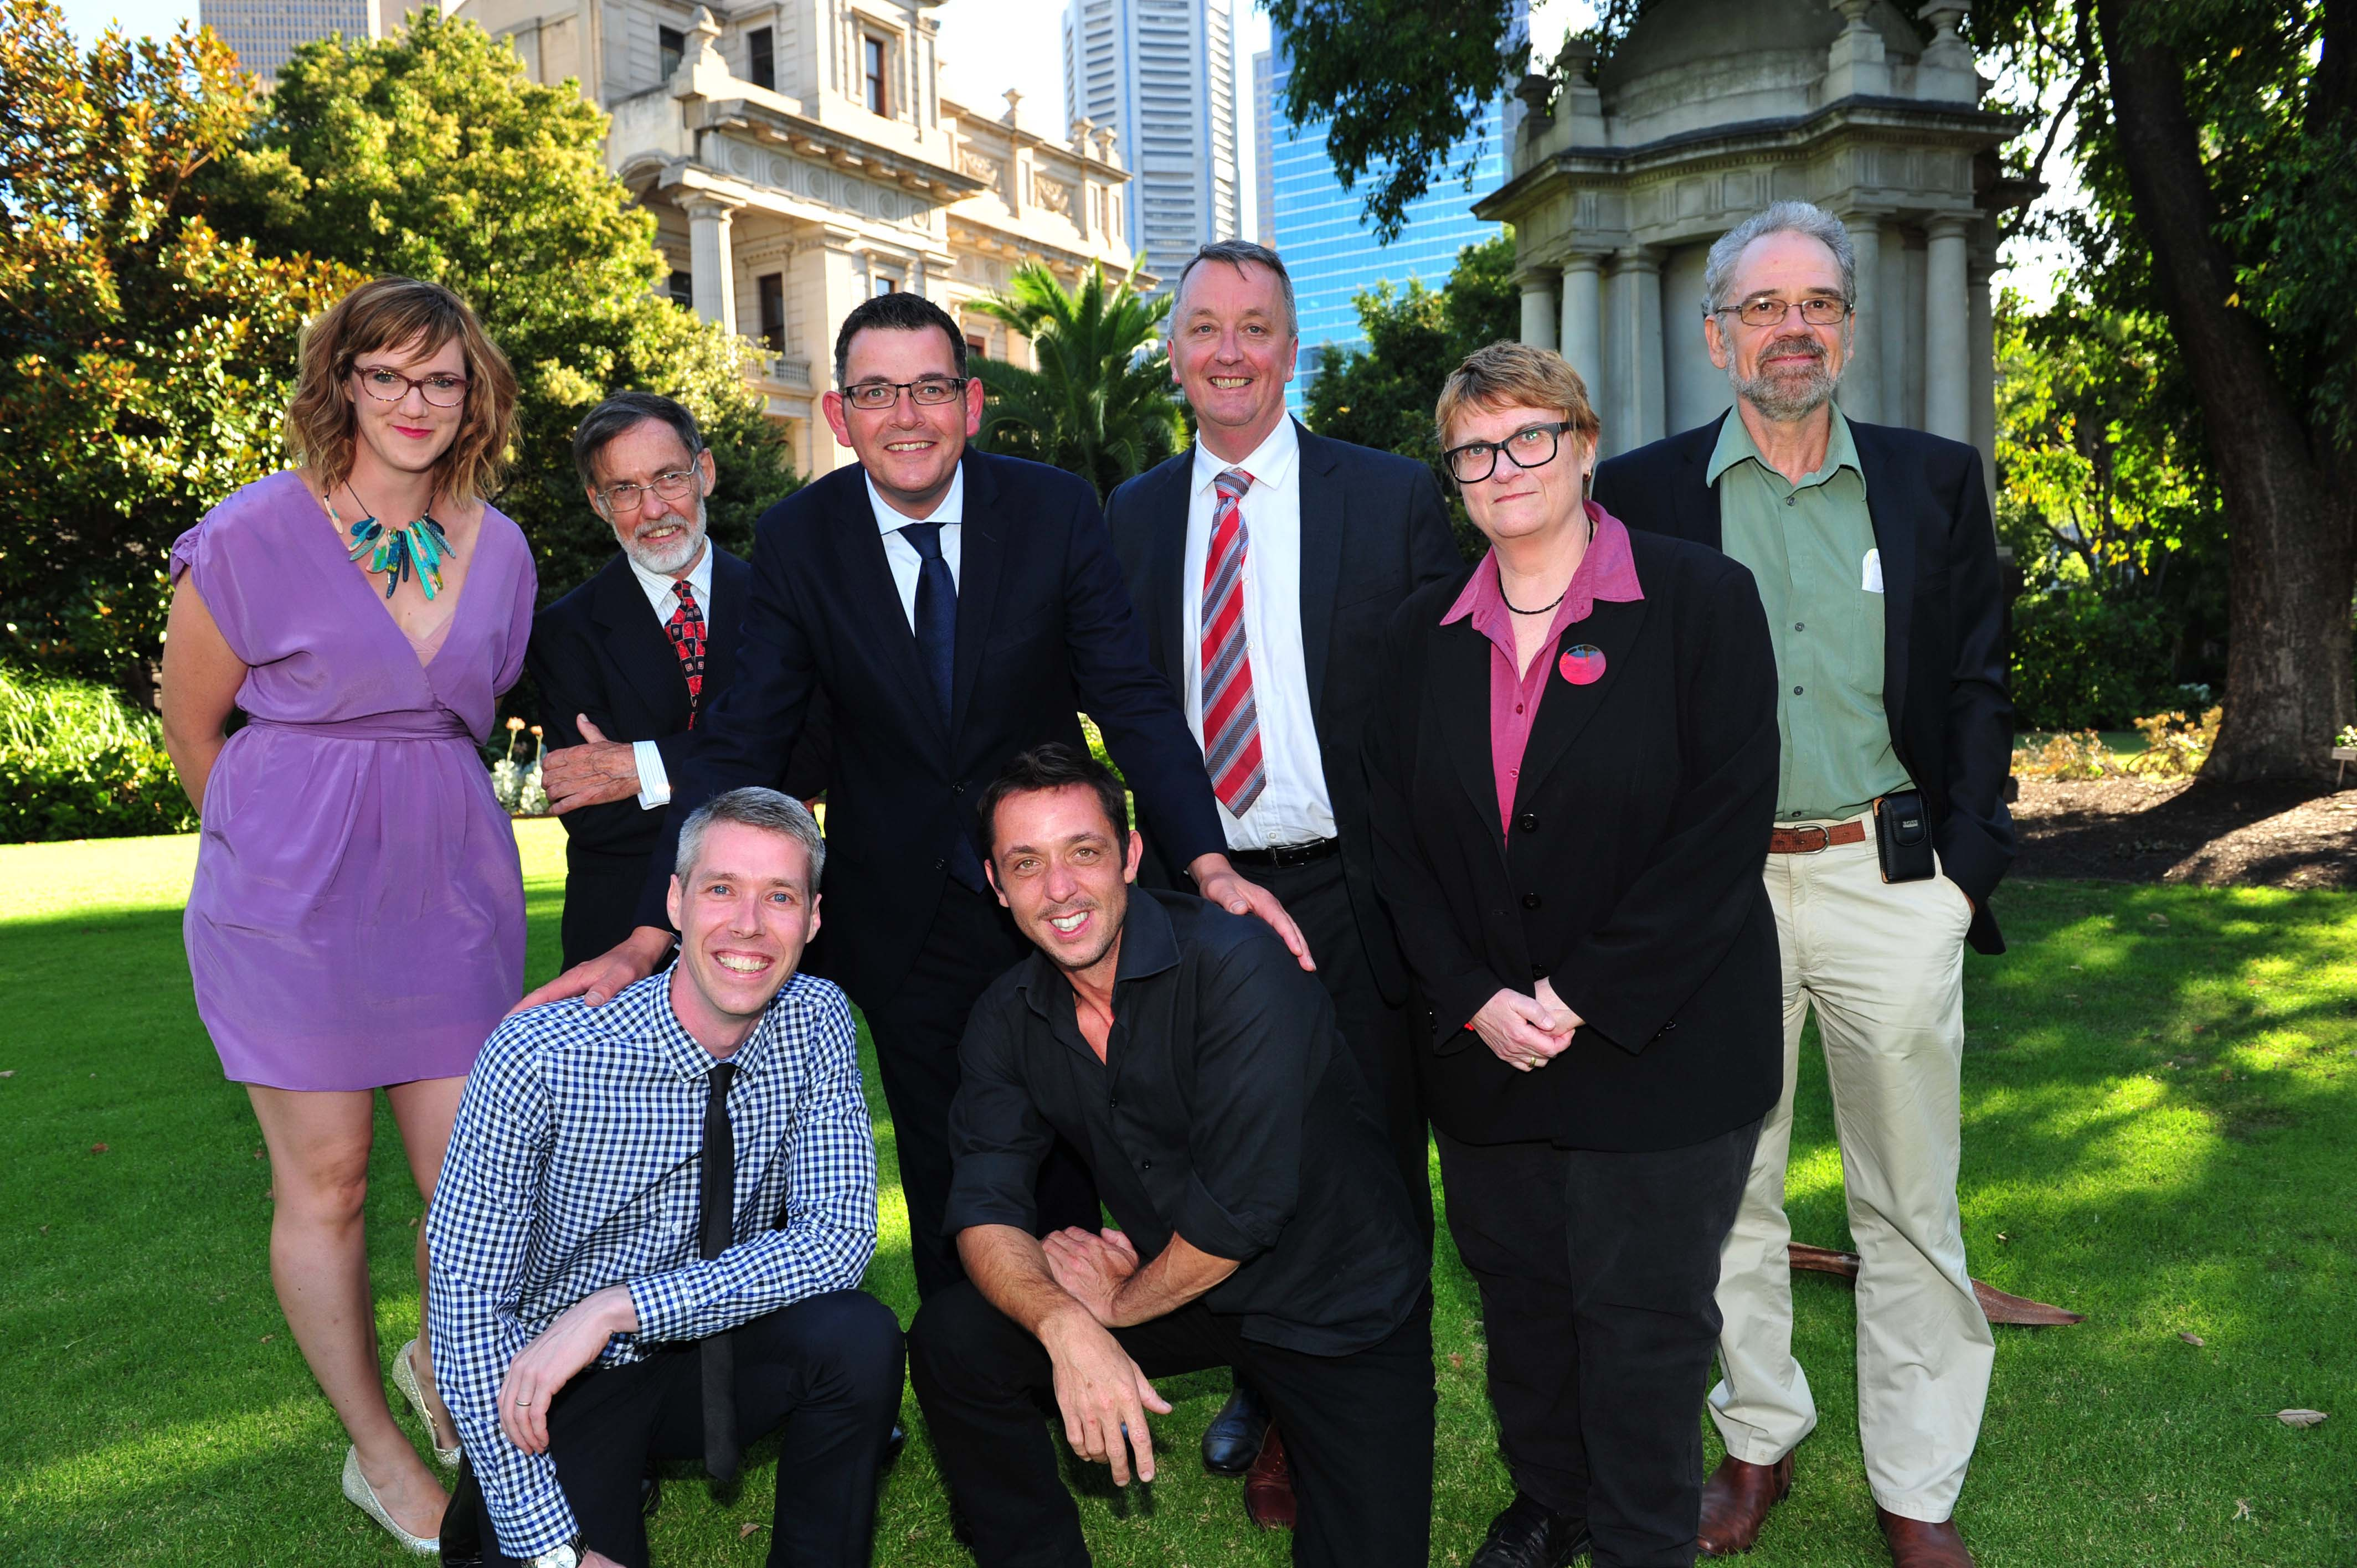 The category winners of the Victorian Premiers' Literary Awards 2015, with Minister for Creative Industries Martin Foley and Premier Daniel Andrews. From left to right, back row to front: Claire Zorn, Alan Atkinson, Premier Daniel Andrews, Creative Minister Martin Foley, Jill Jones, Tim Low, Rohan Wilson and Angus Cerini.